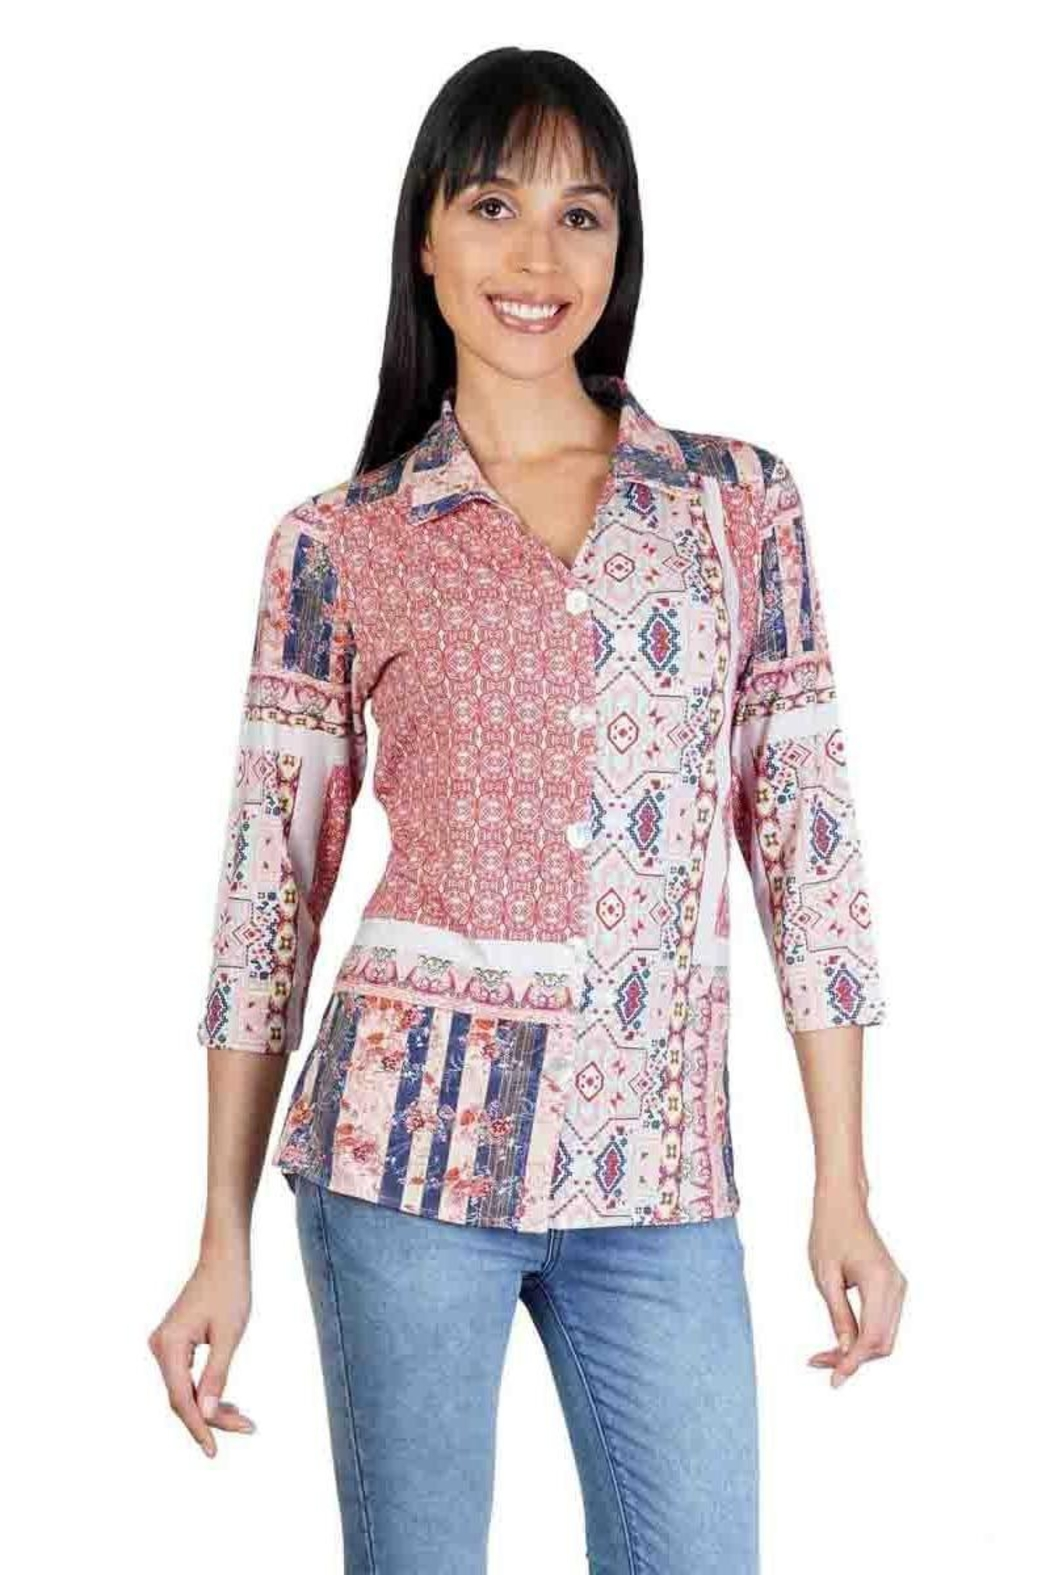 Parsley & Sage Patchwork Button-Up Top - Main Image